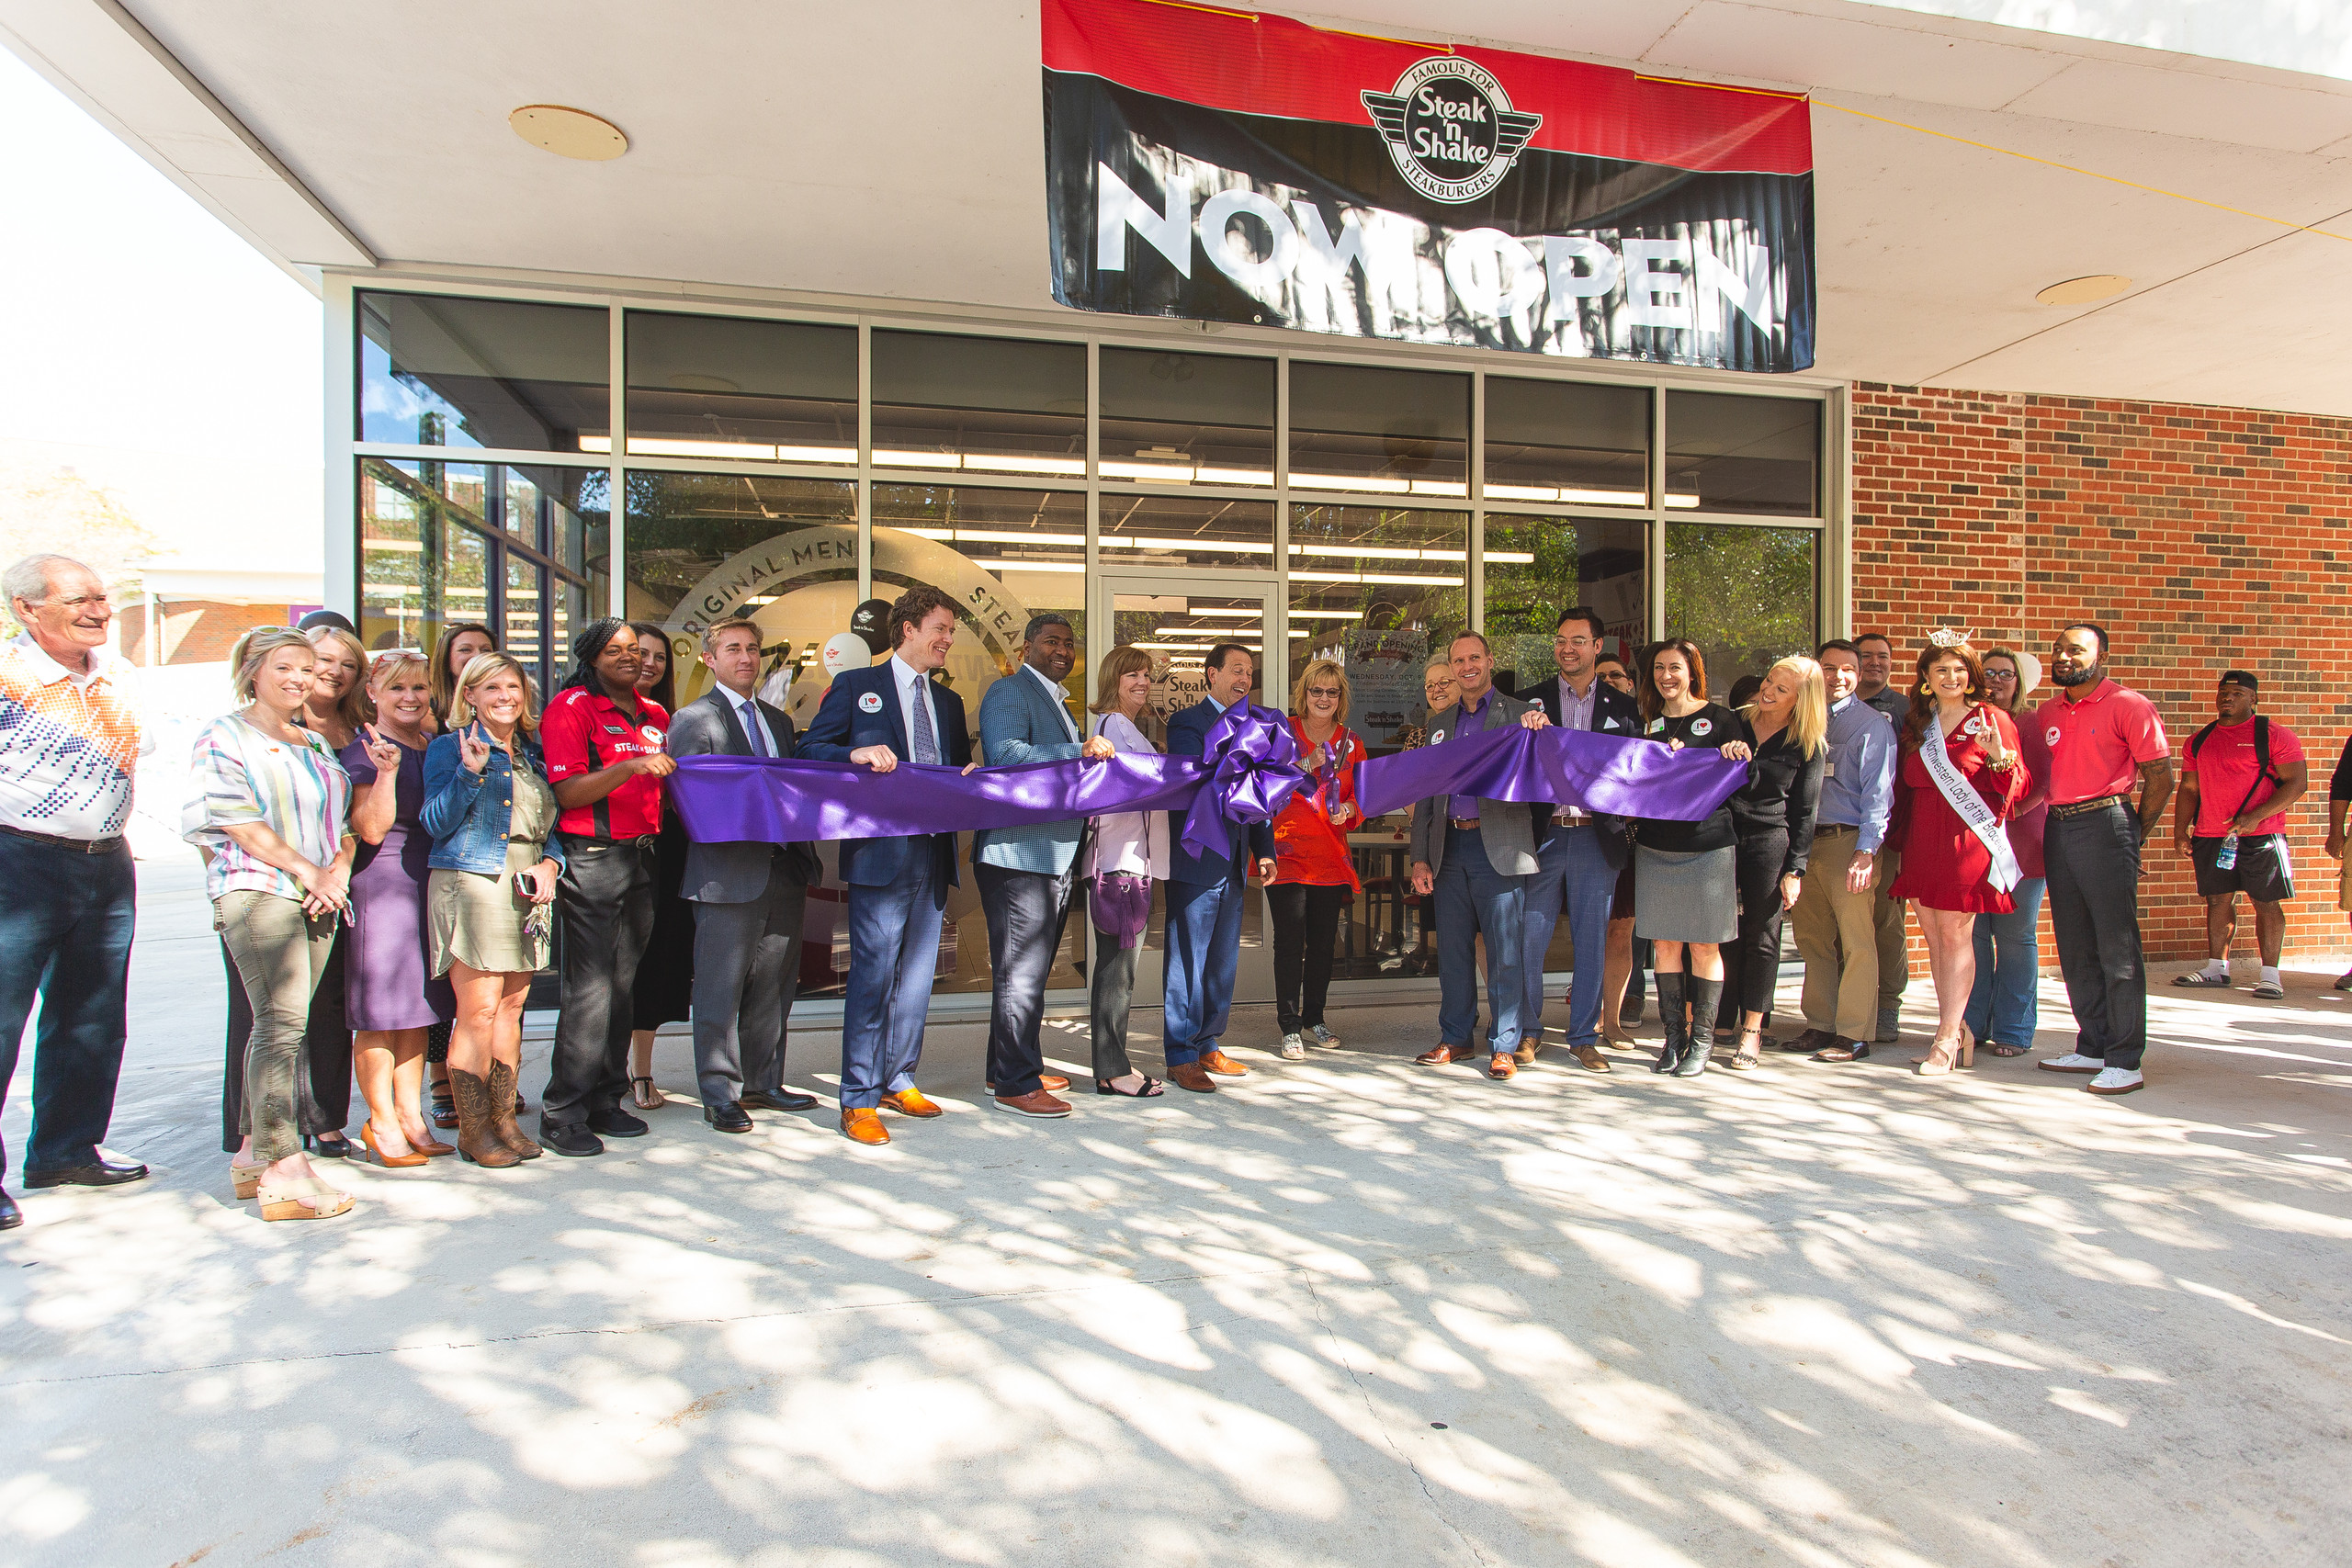 Ribbon cutting ceremony for Steak N Shake Natchitoches